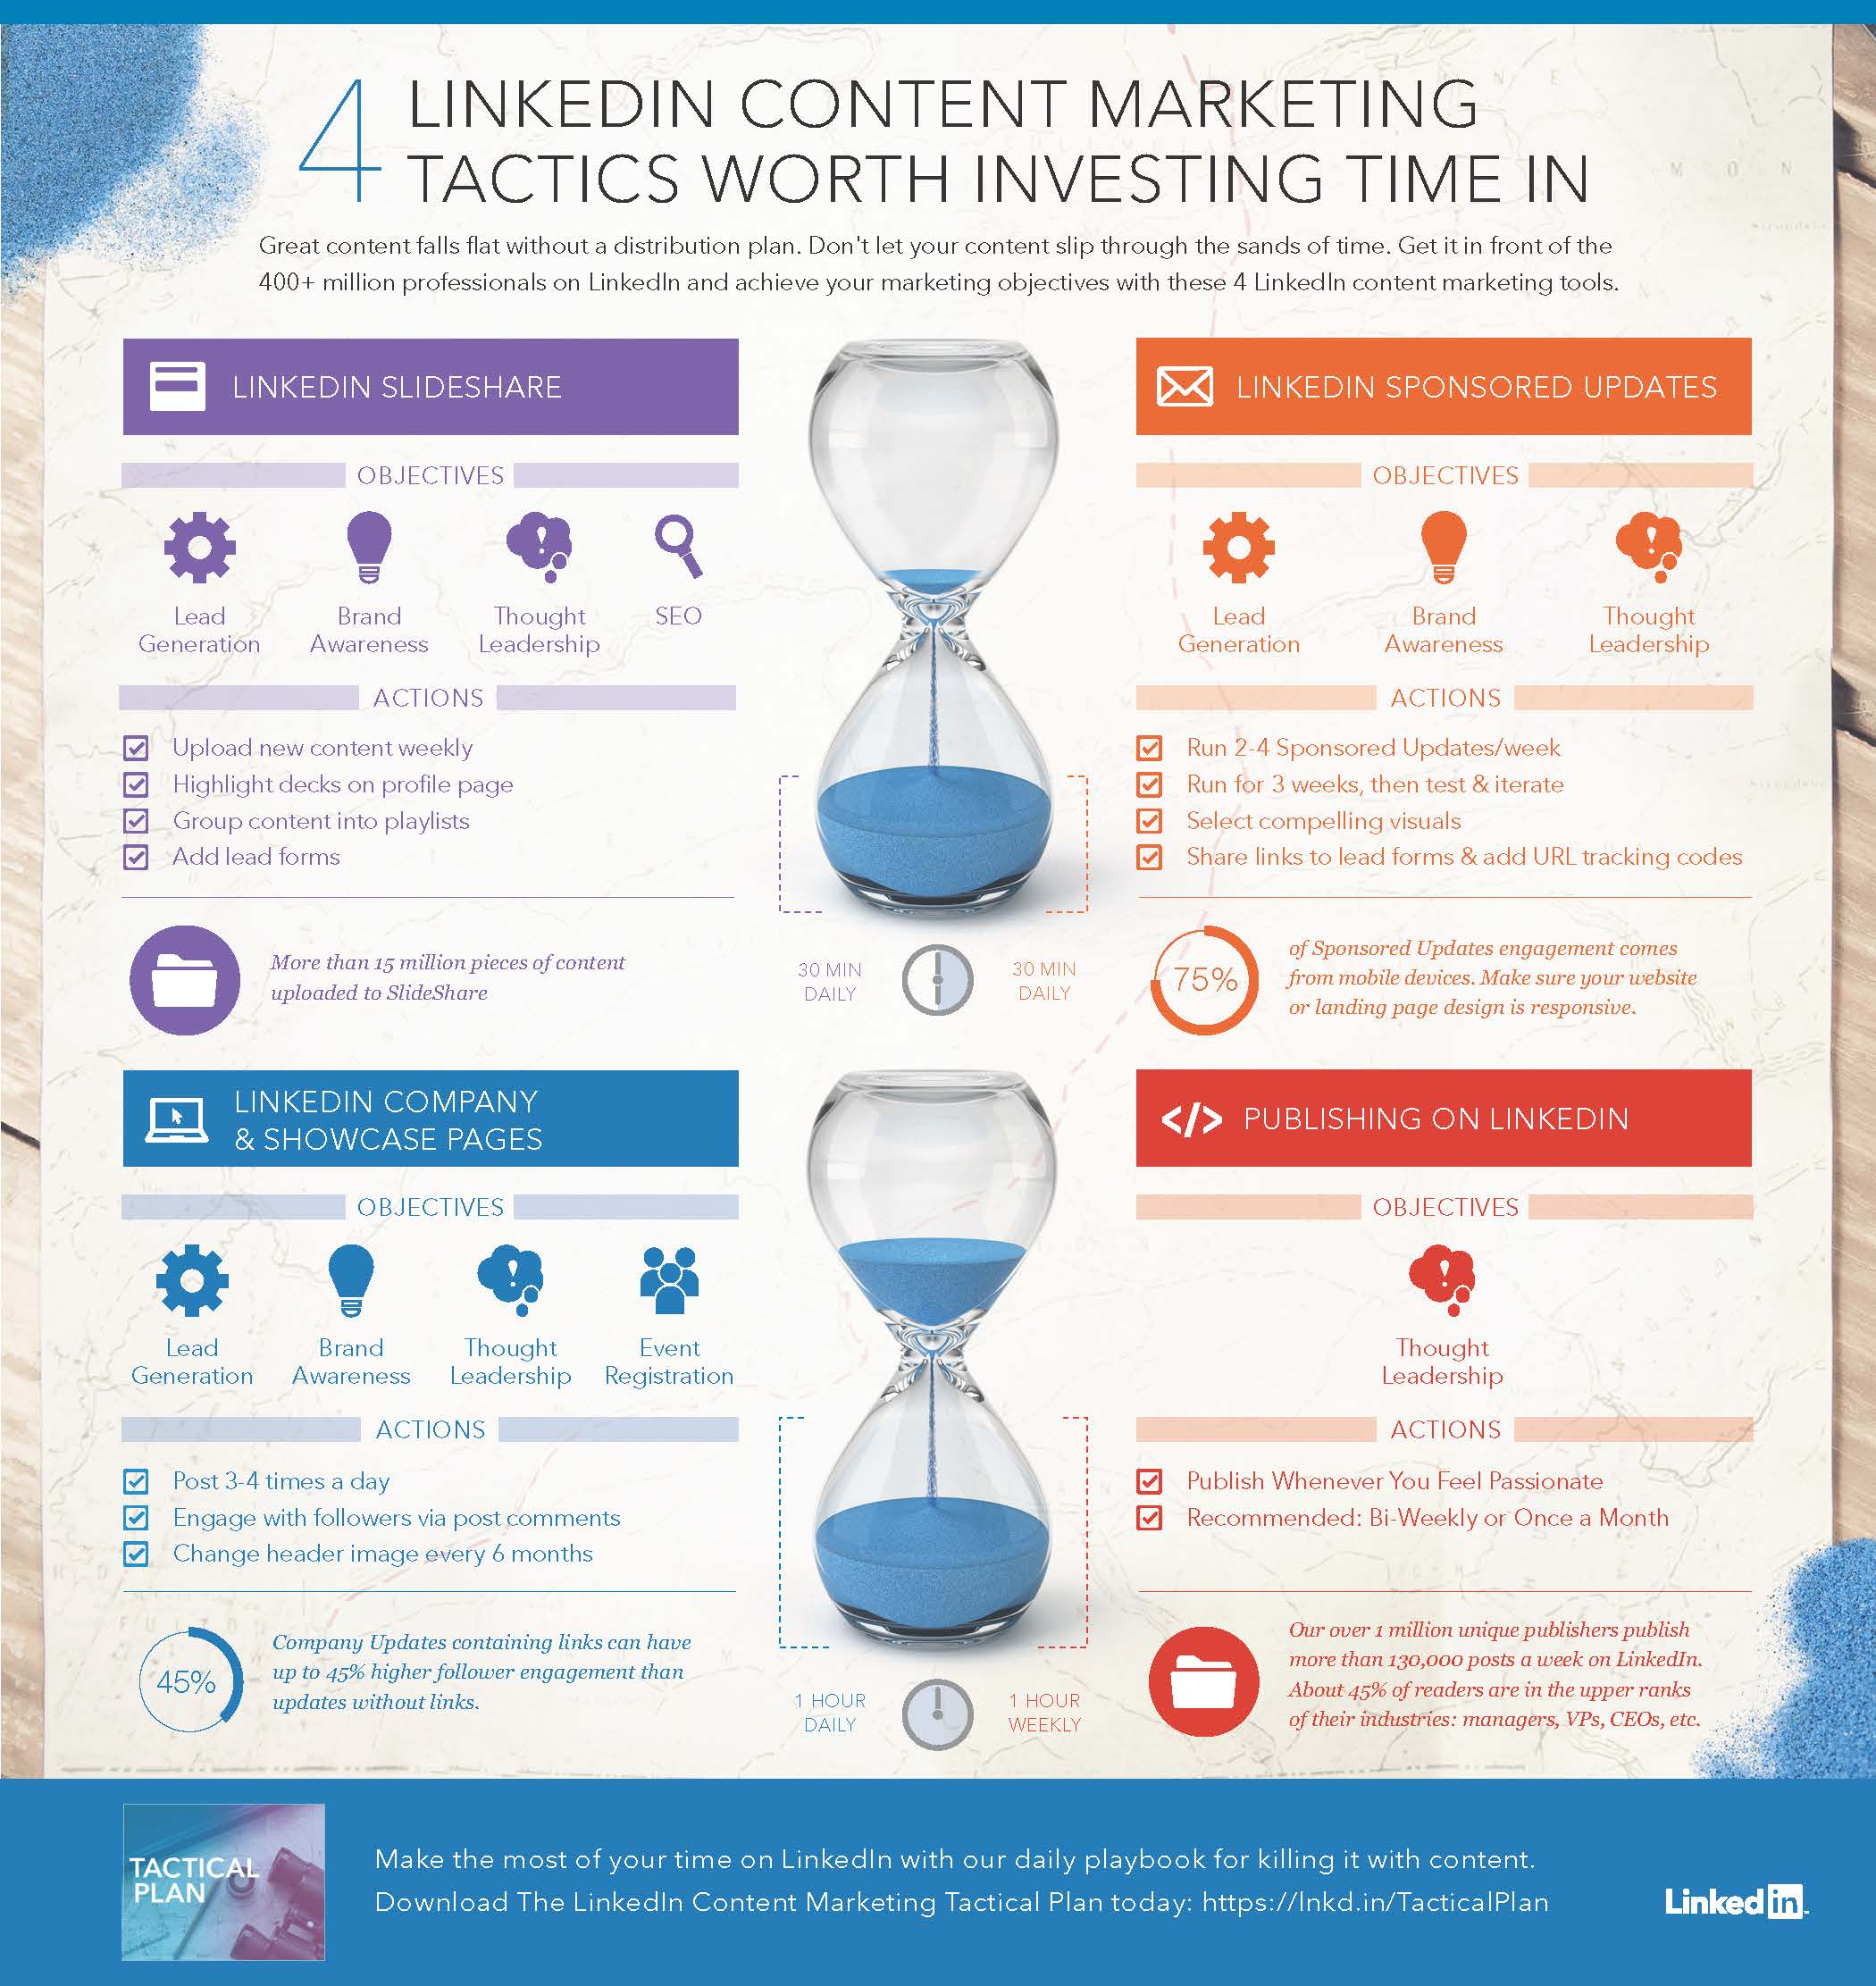 LinkedIn Content Marketing Tactical Plan